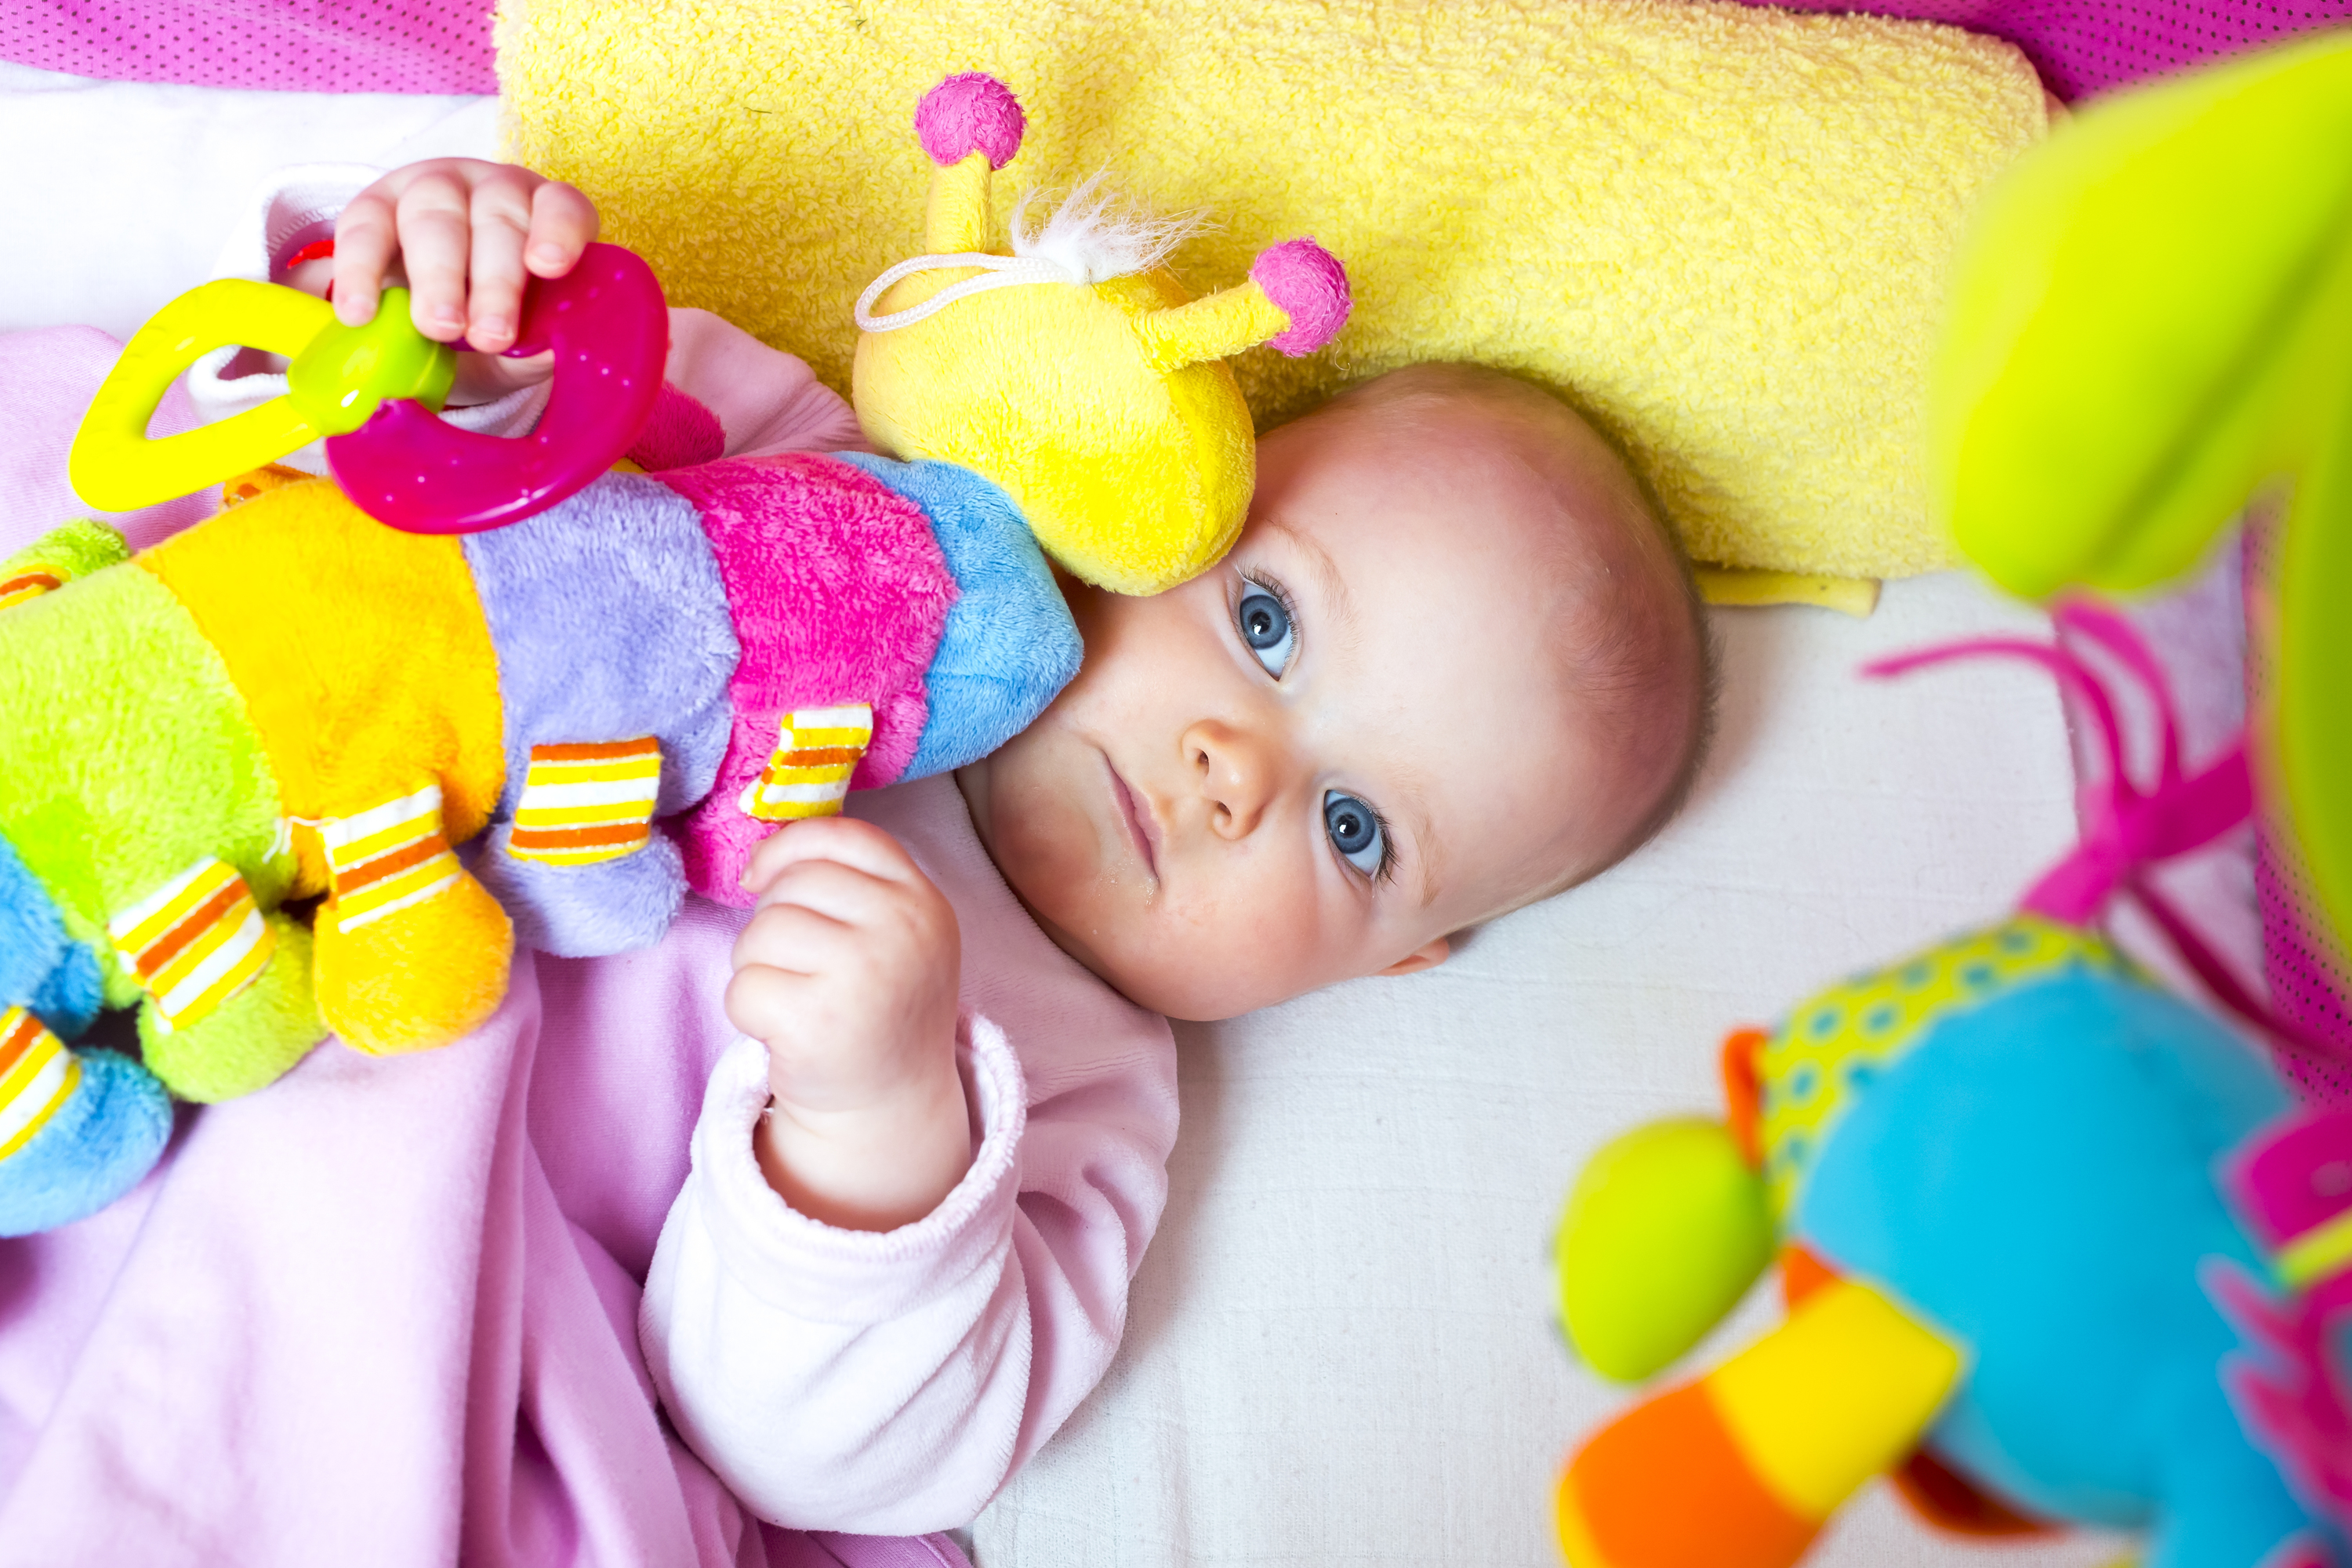 The worst baby names ever, as shared by Reddit users